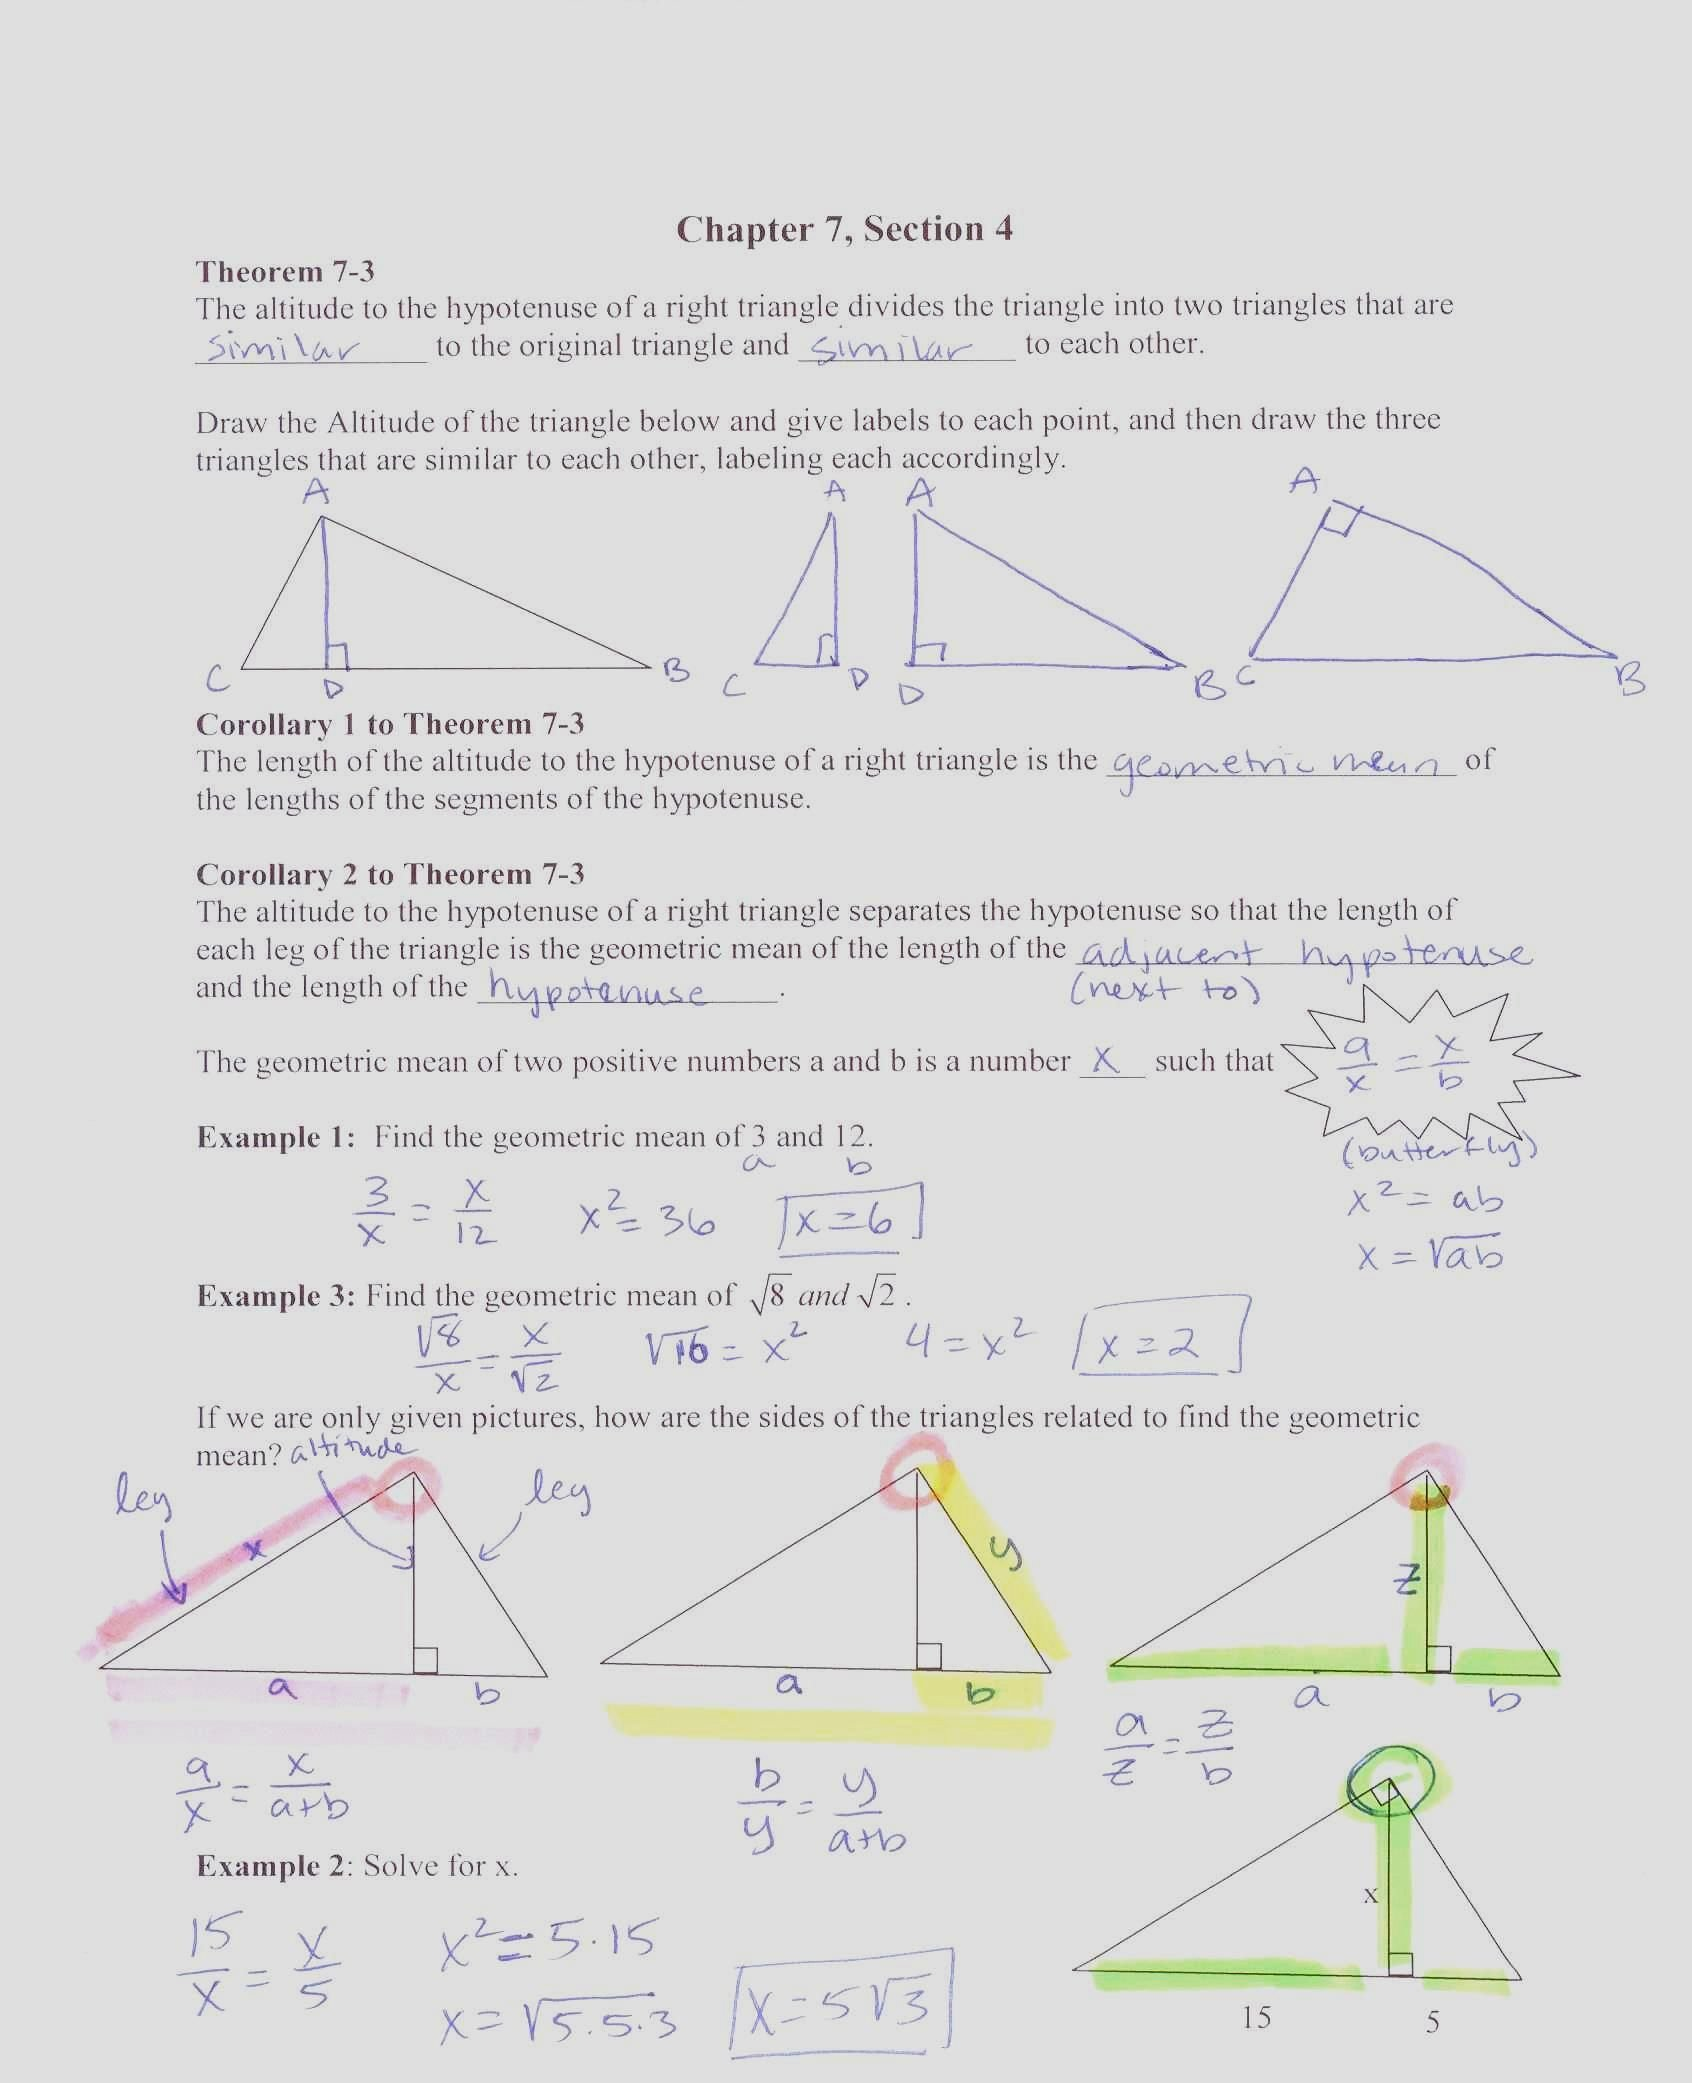 Geometry Worksheet Congruent Triangles Answers Beautiful Geometry Worksheet Congruent Triangles Sss and Sas Answers